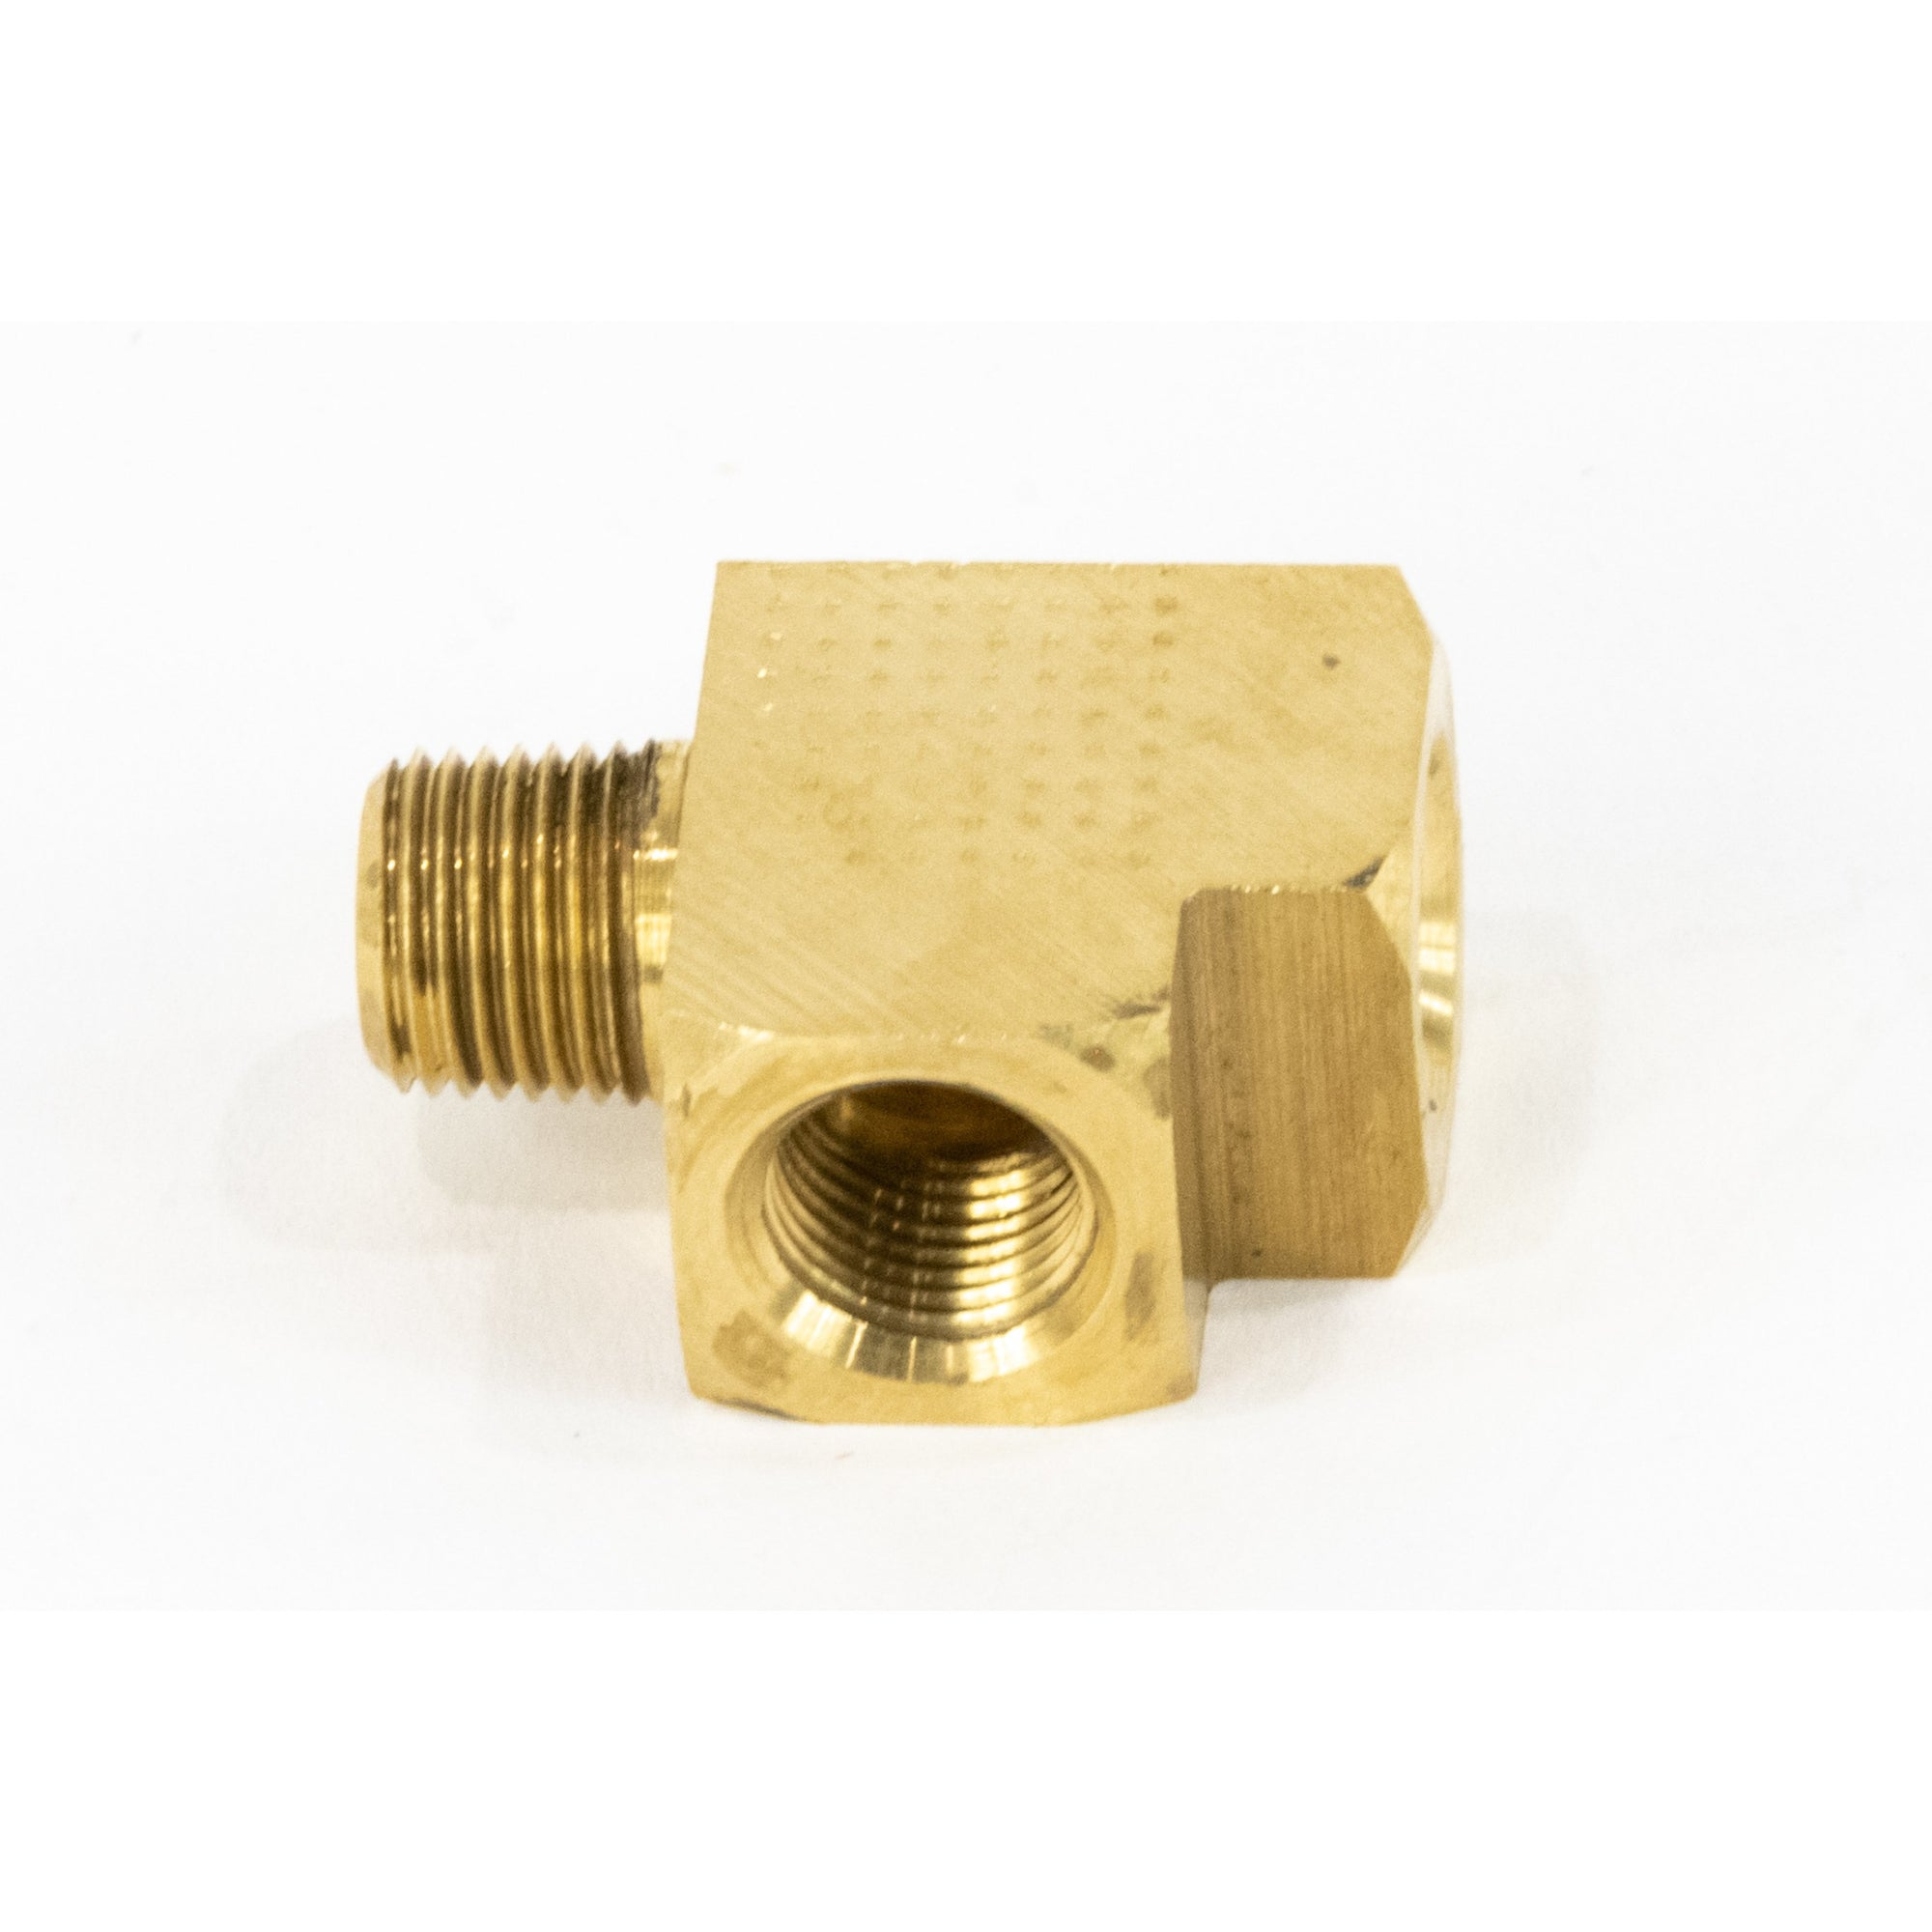 "Brass T for Wastegate Sensor Mounting for Dome Pressure 1/8"" NPT-Motion Raceworks-Motion Raceworks"